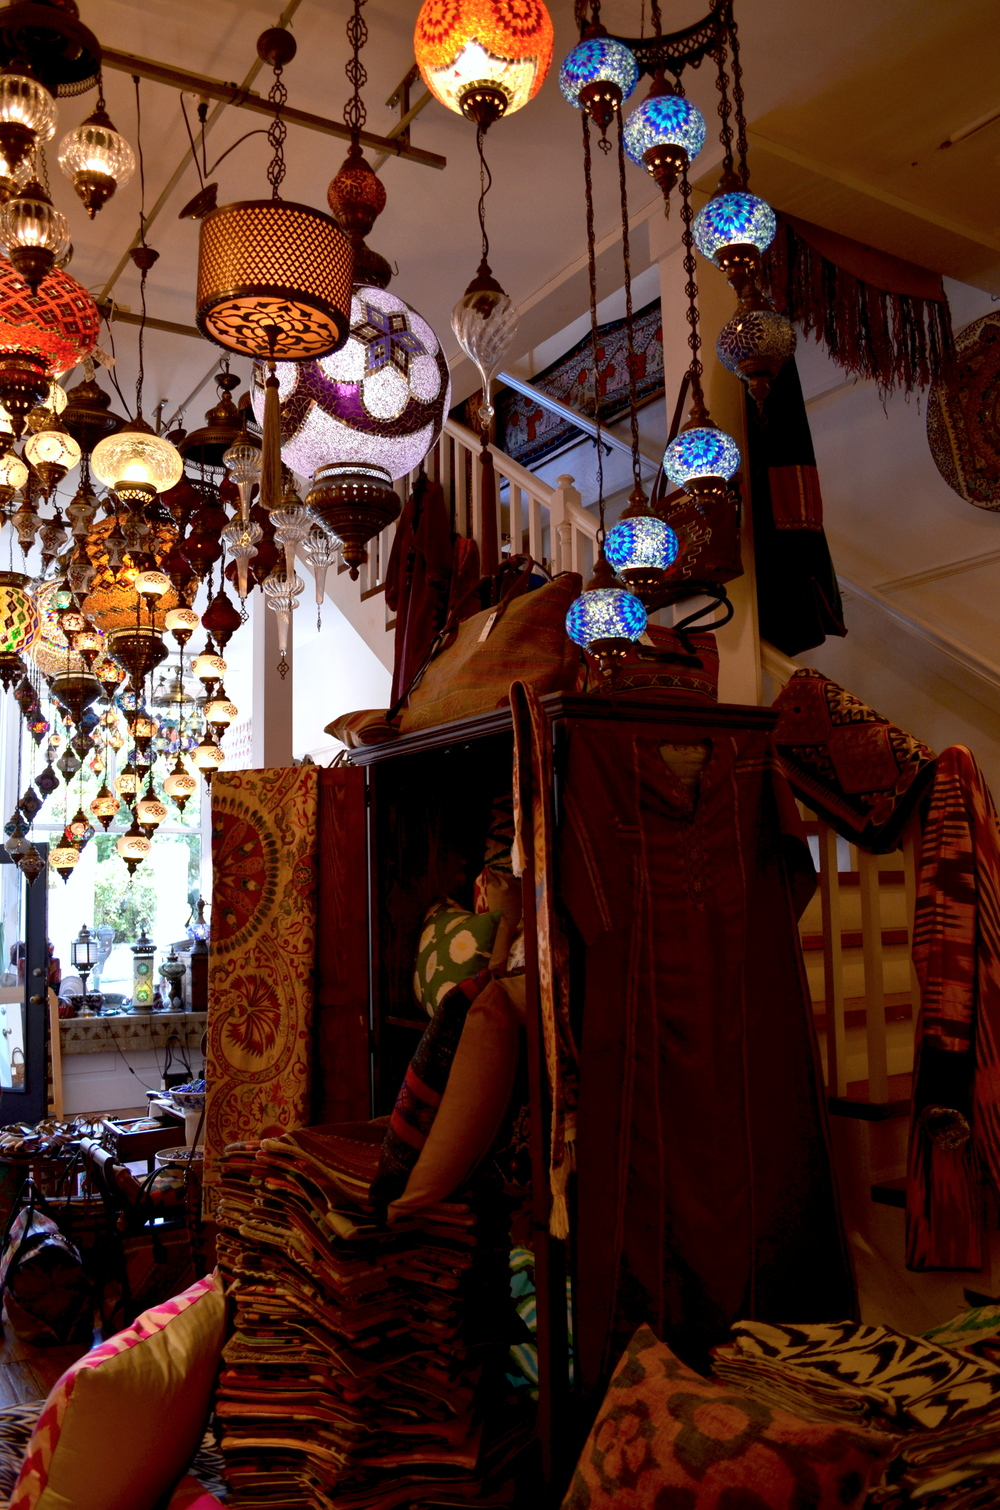 My favorite little souk-like shop. Glittering lanterns, textured pillows and woven boots!